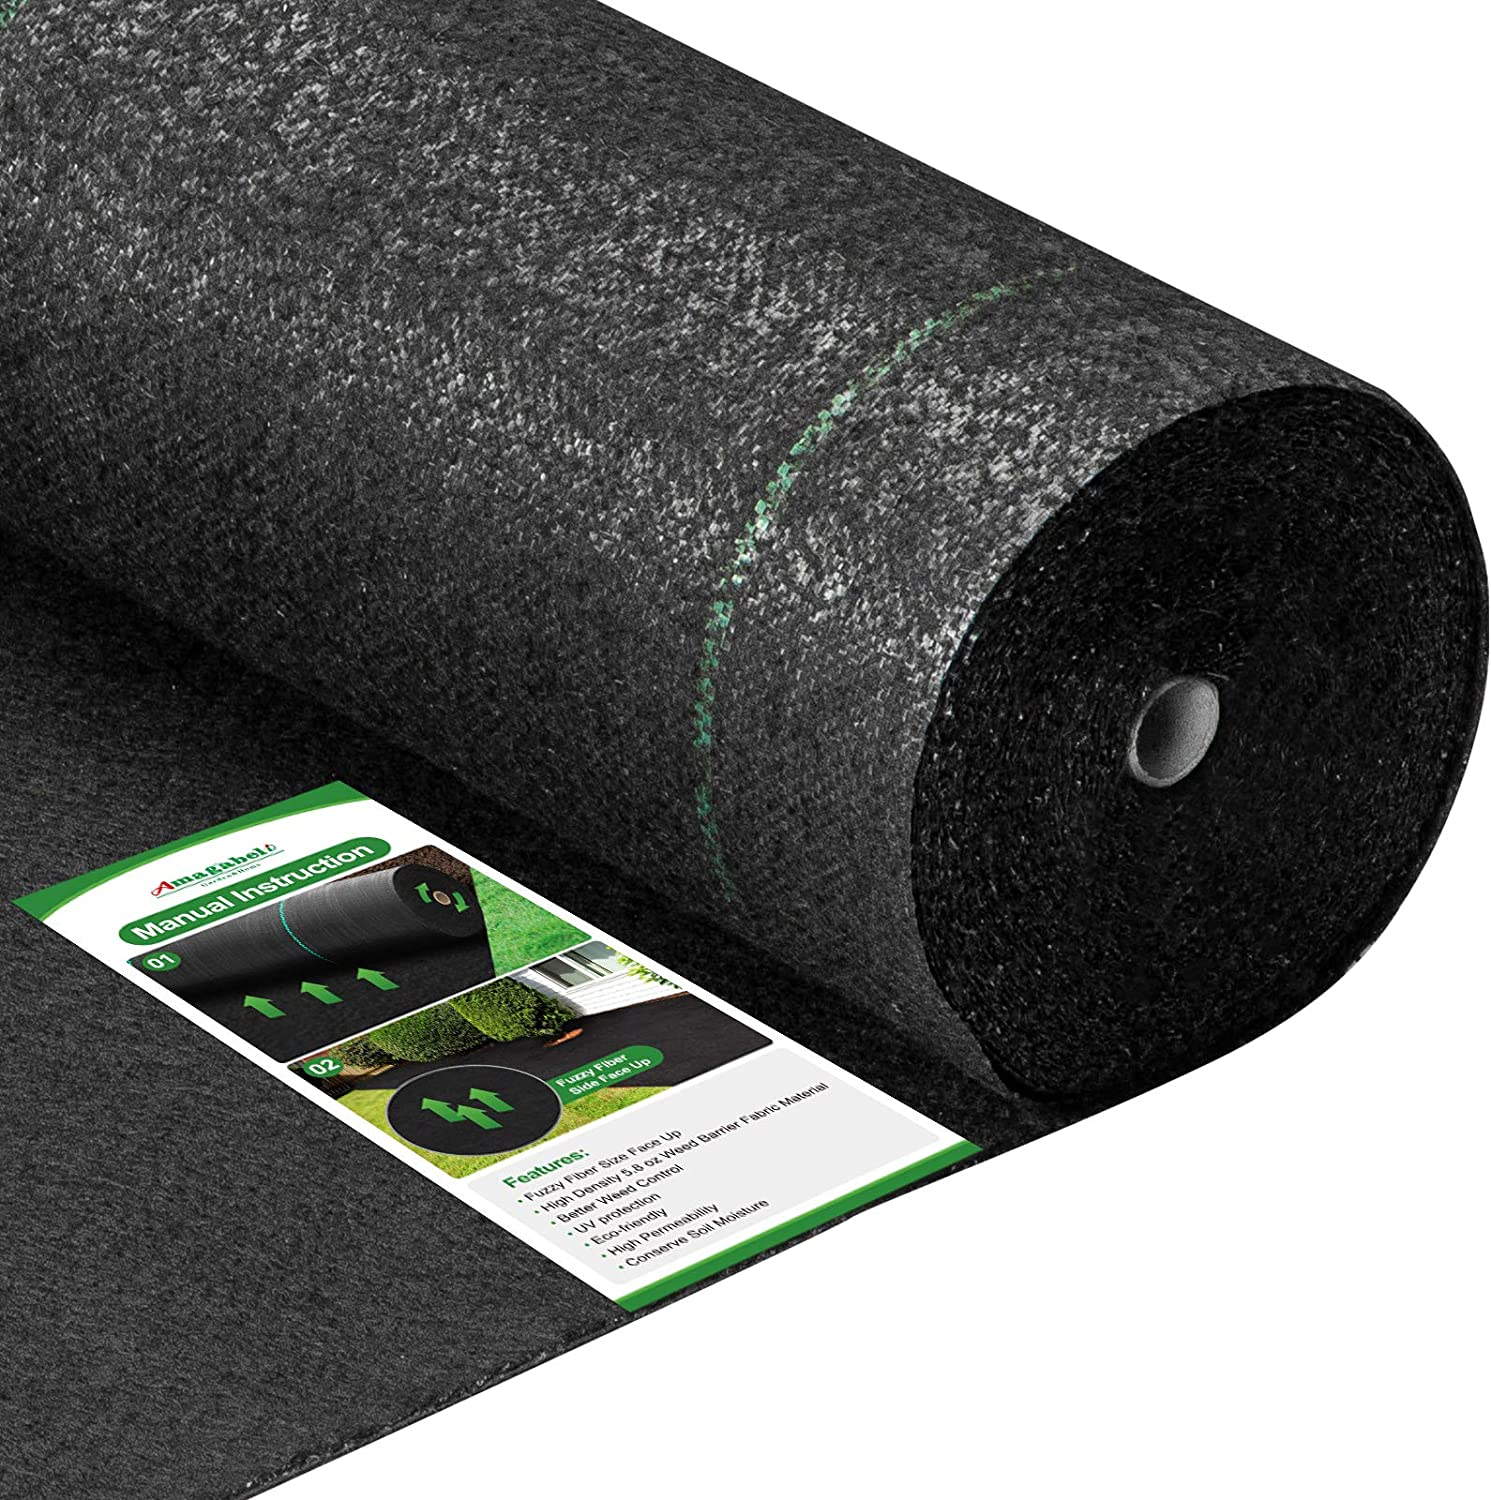 Amagabeli 5.8oz 5x300ft Weed Barrier Landscape Fabric Heavy Duty Ground Cover Weed Cloth Geotextile Fabric Durable Driveway Cover Garden Lawn Fabric Outdoor Weed Mat